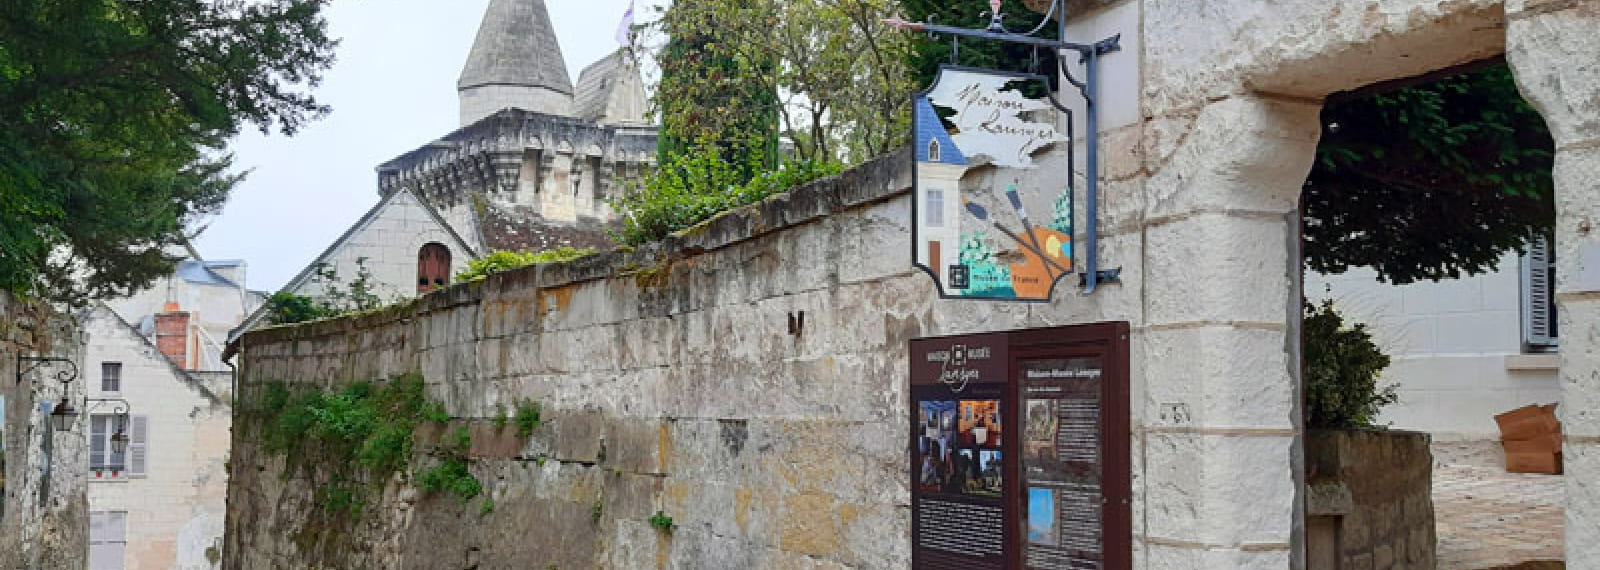 Maison-Musée Lansyer / Loches